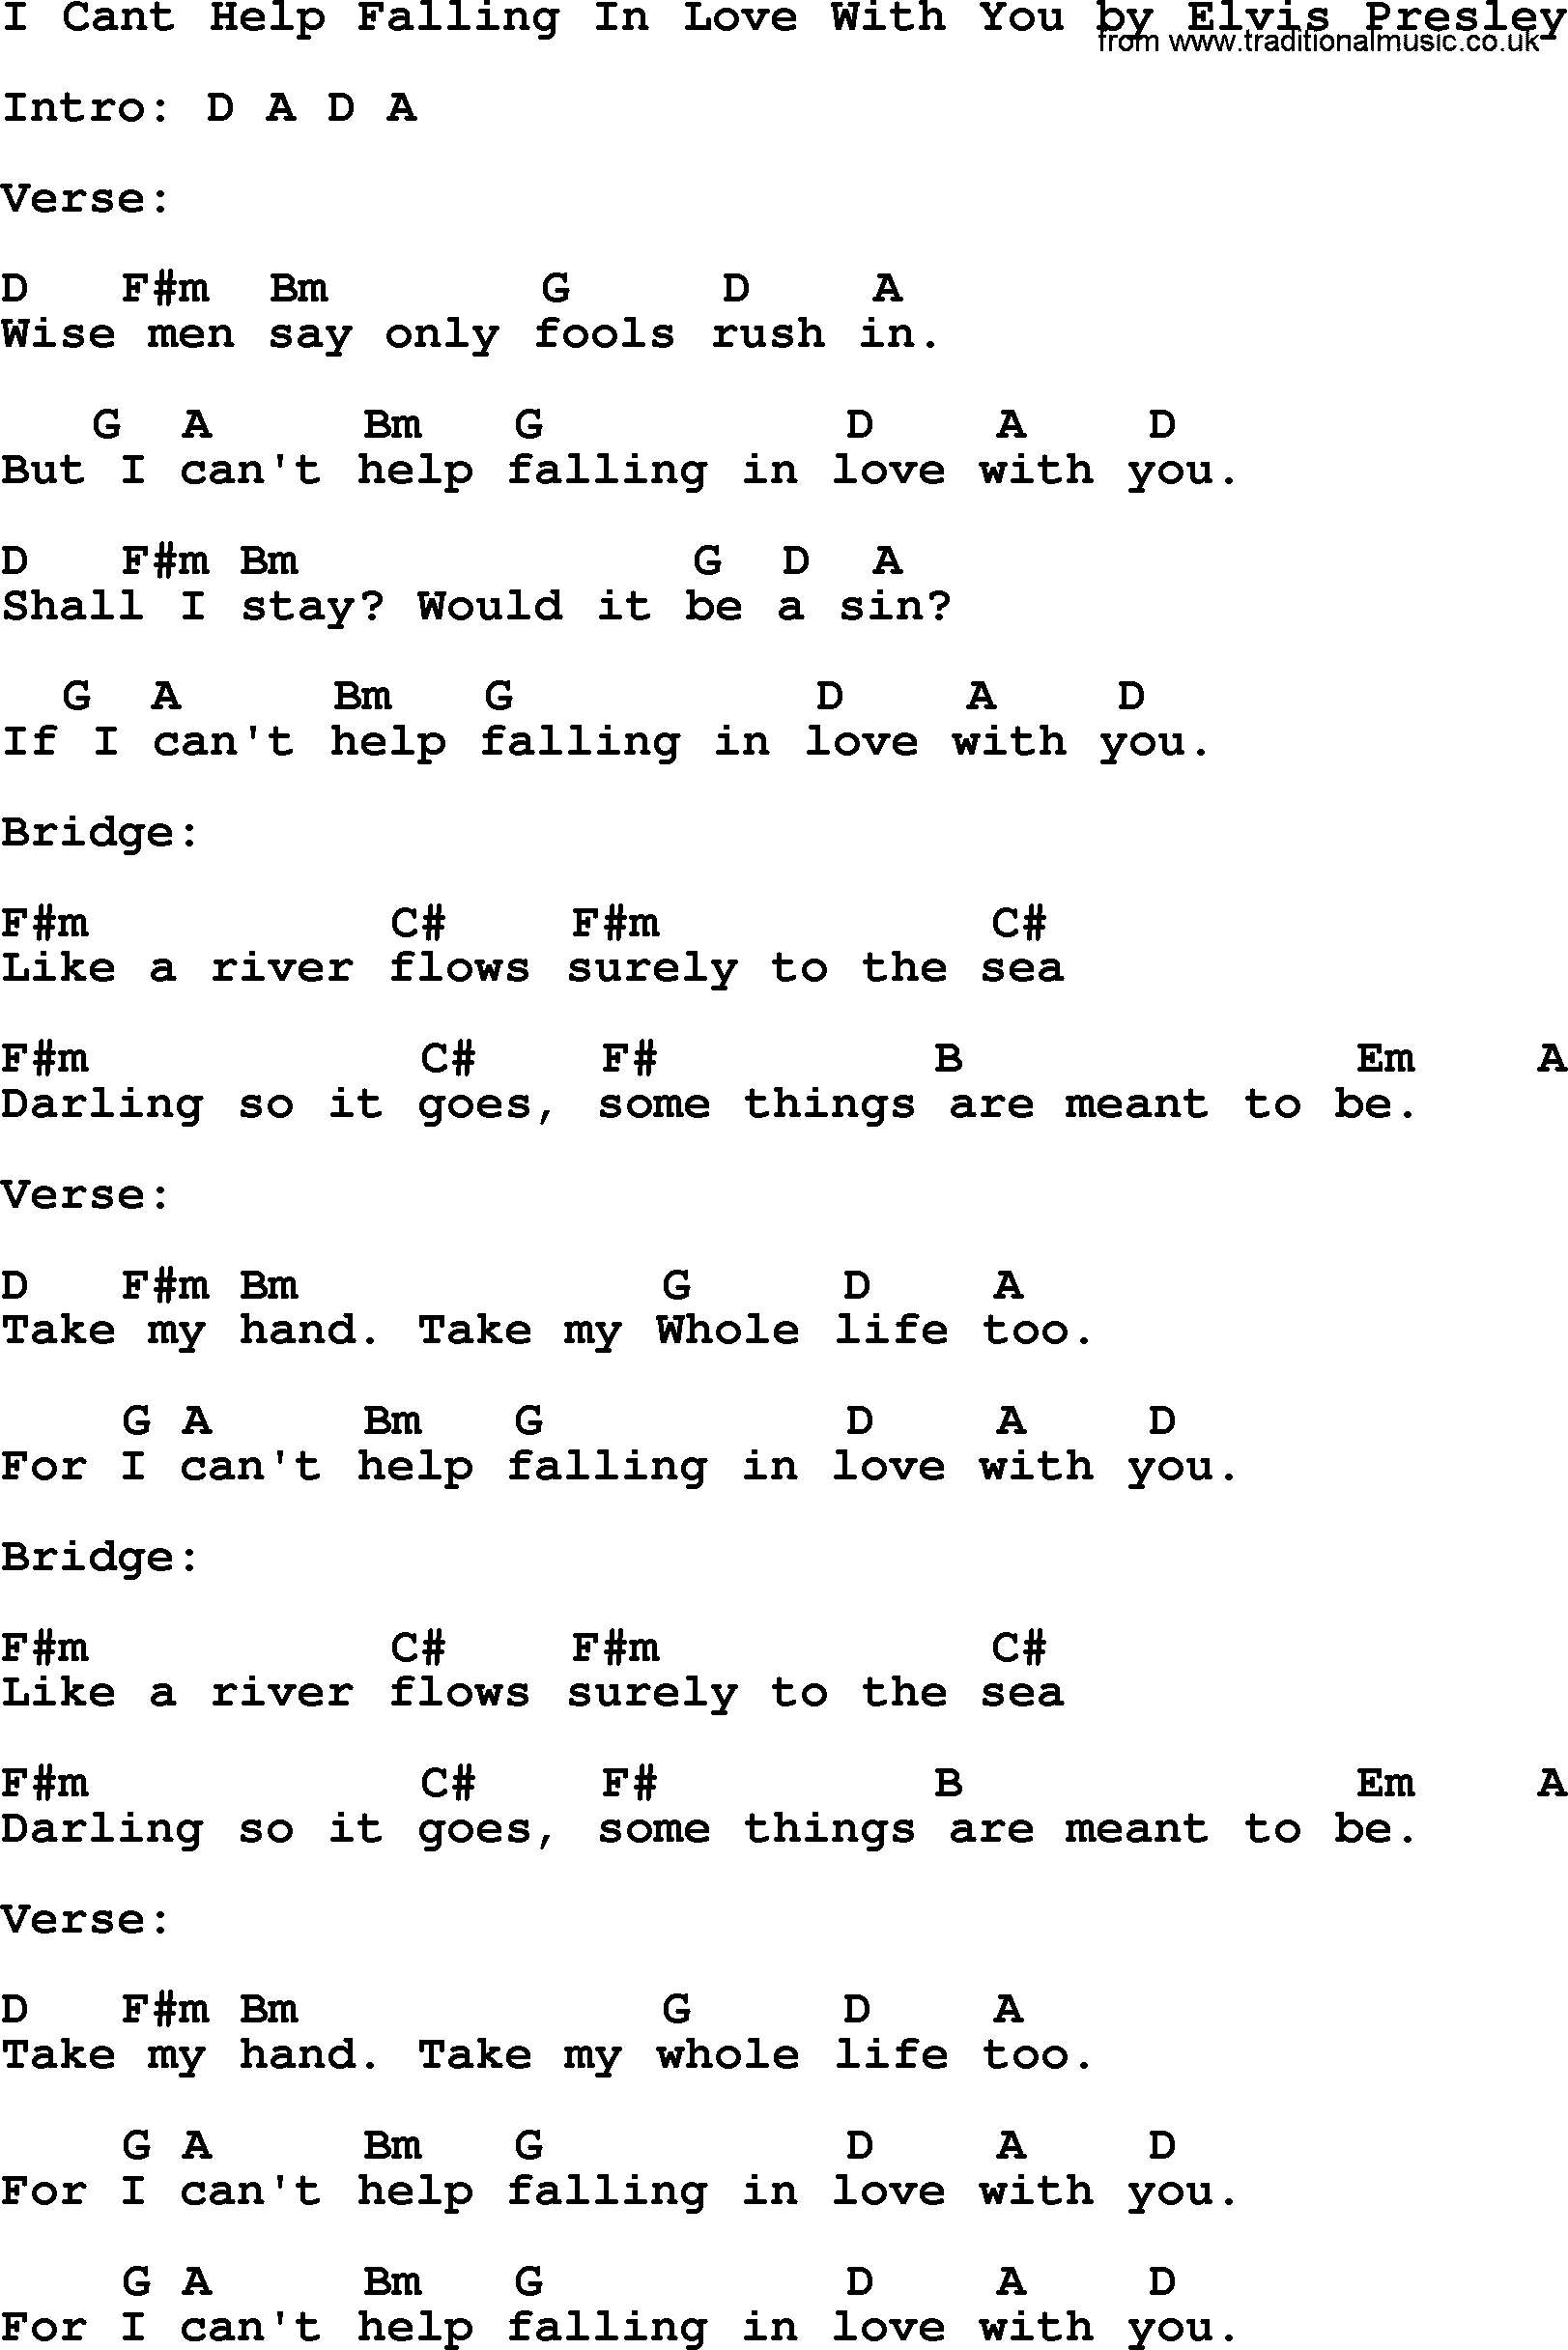 I Can T Help Falling In Love With You Chords I Cant Help Falling In Love With You Elvis Presley Lyrics And